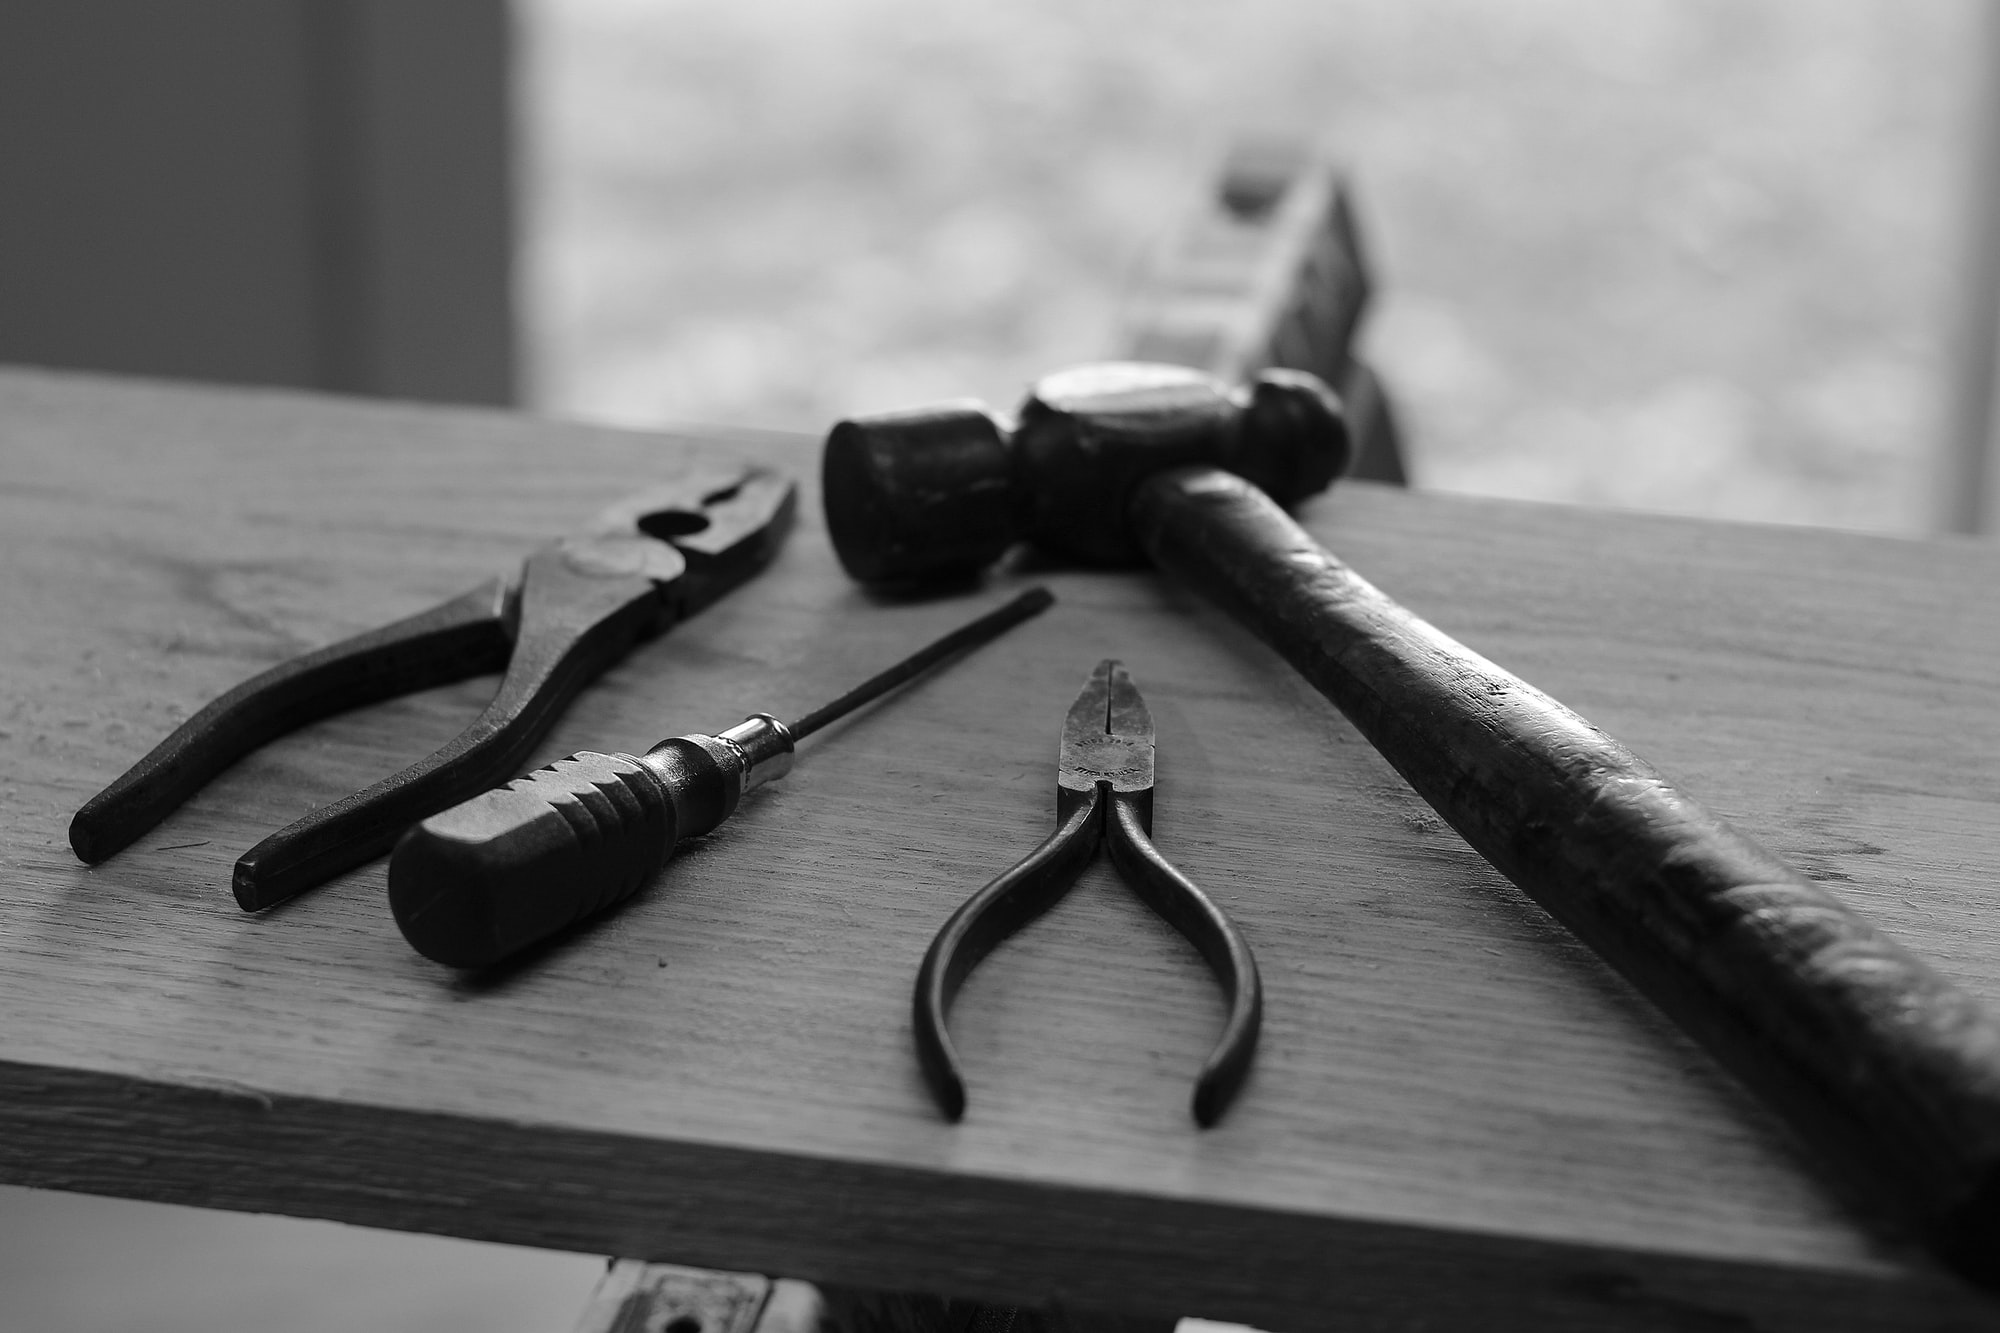 Hand Tools in Black and White